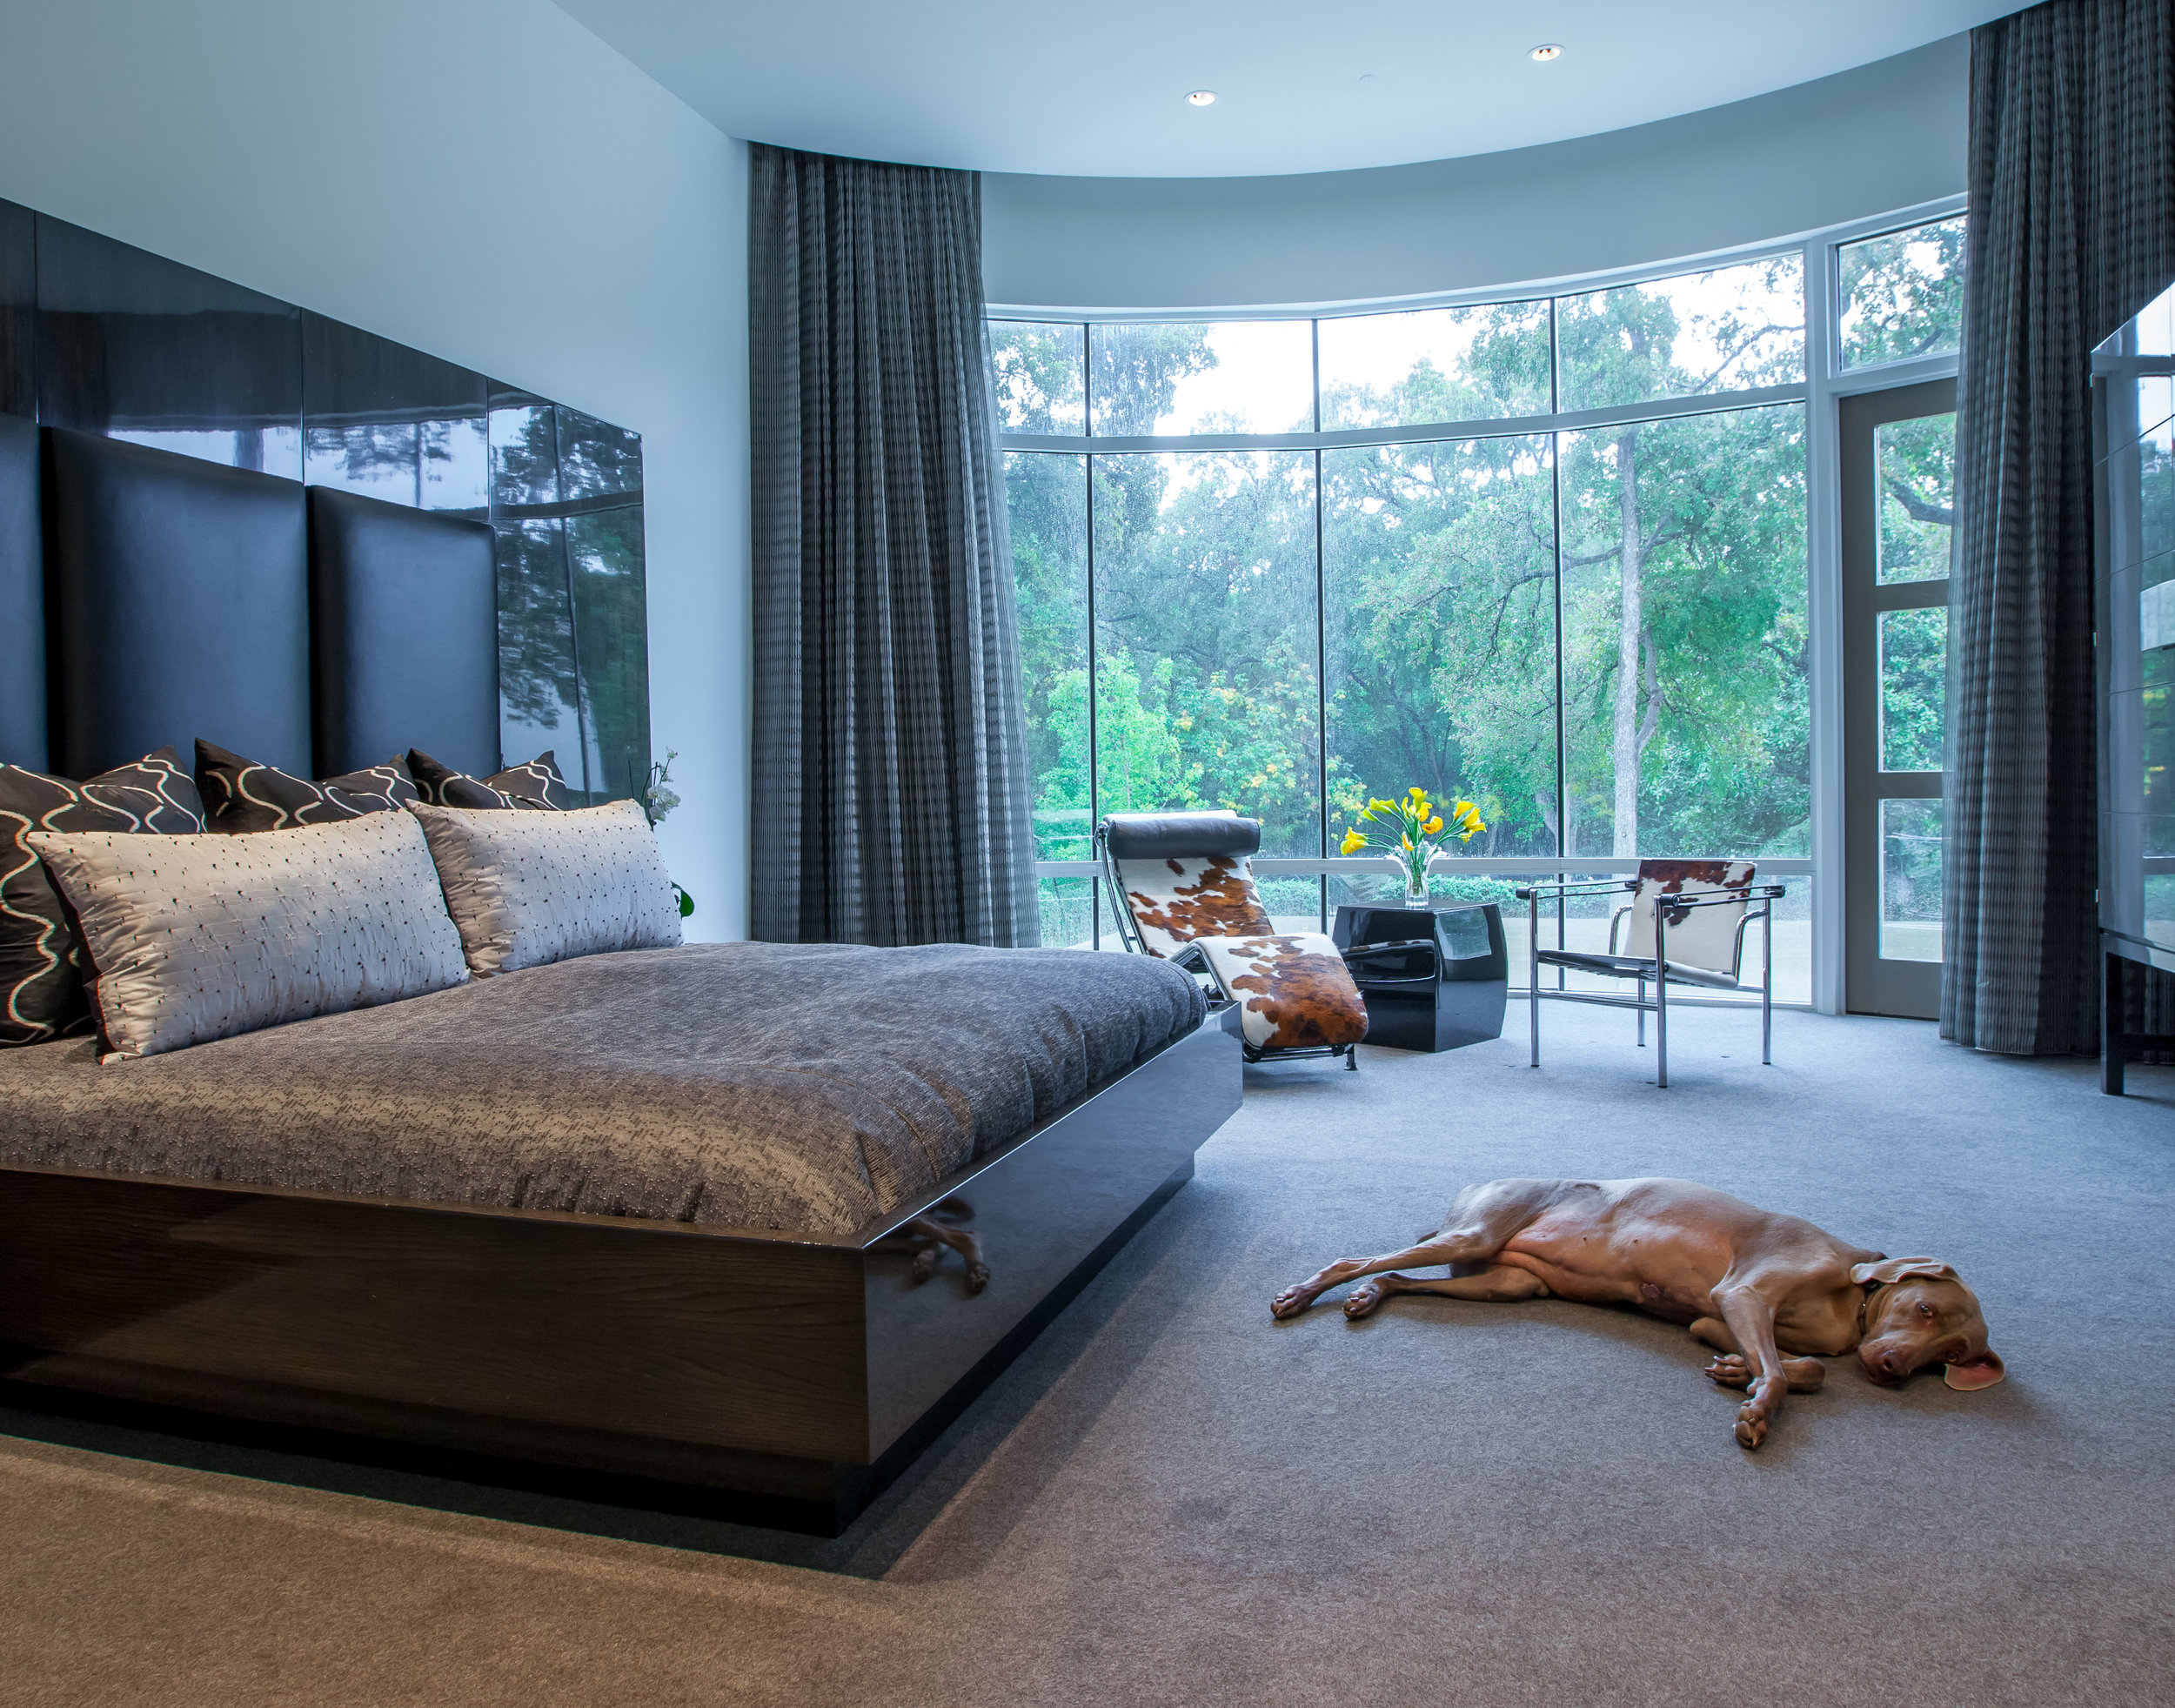 BROOKRIDGE- Master Bdrm dog.jpg